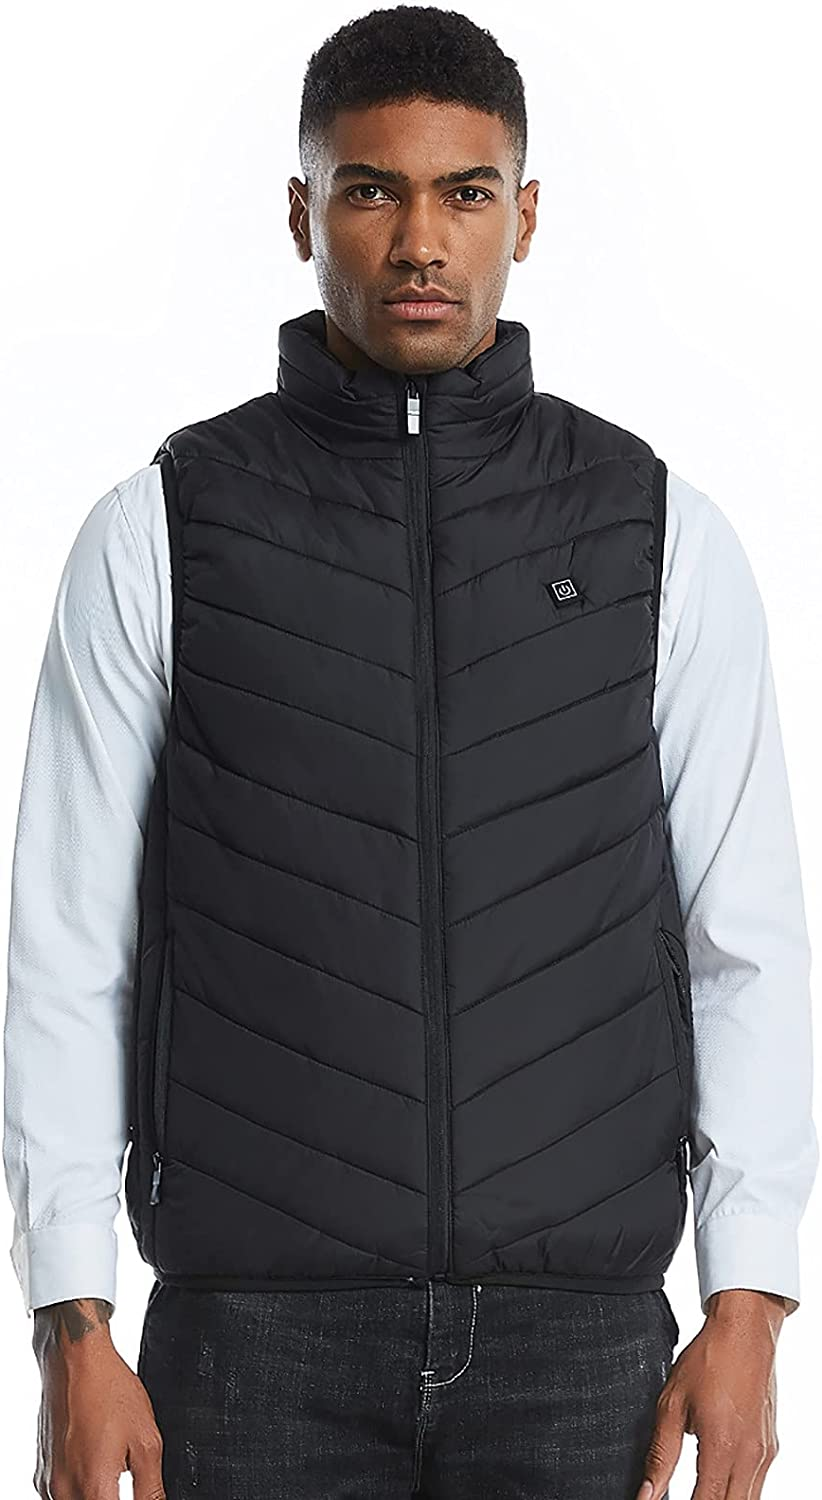 Heated Vest Japan's largest assortment for Men Price reduction Women Winter Jacket Riding For Waterproof Sk